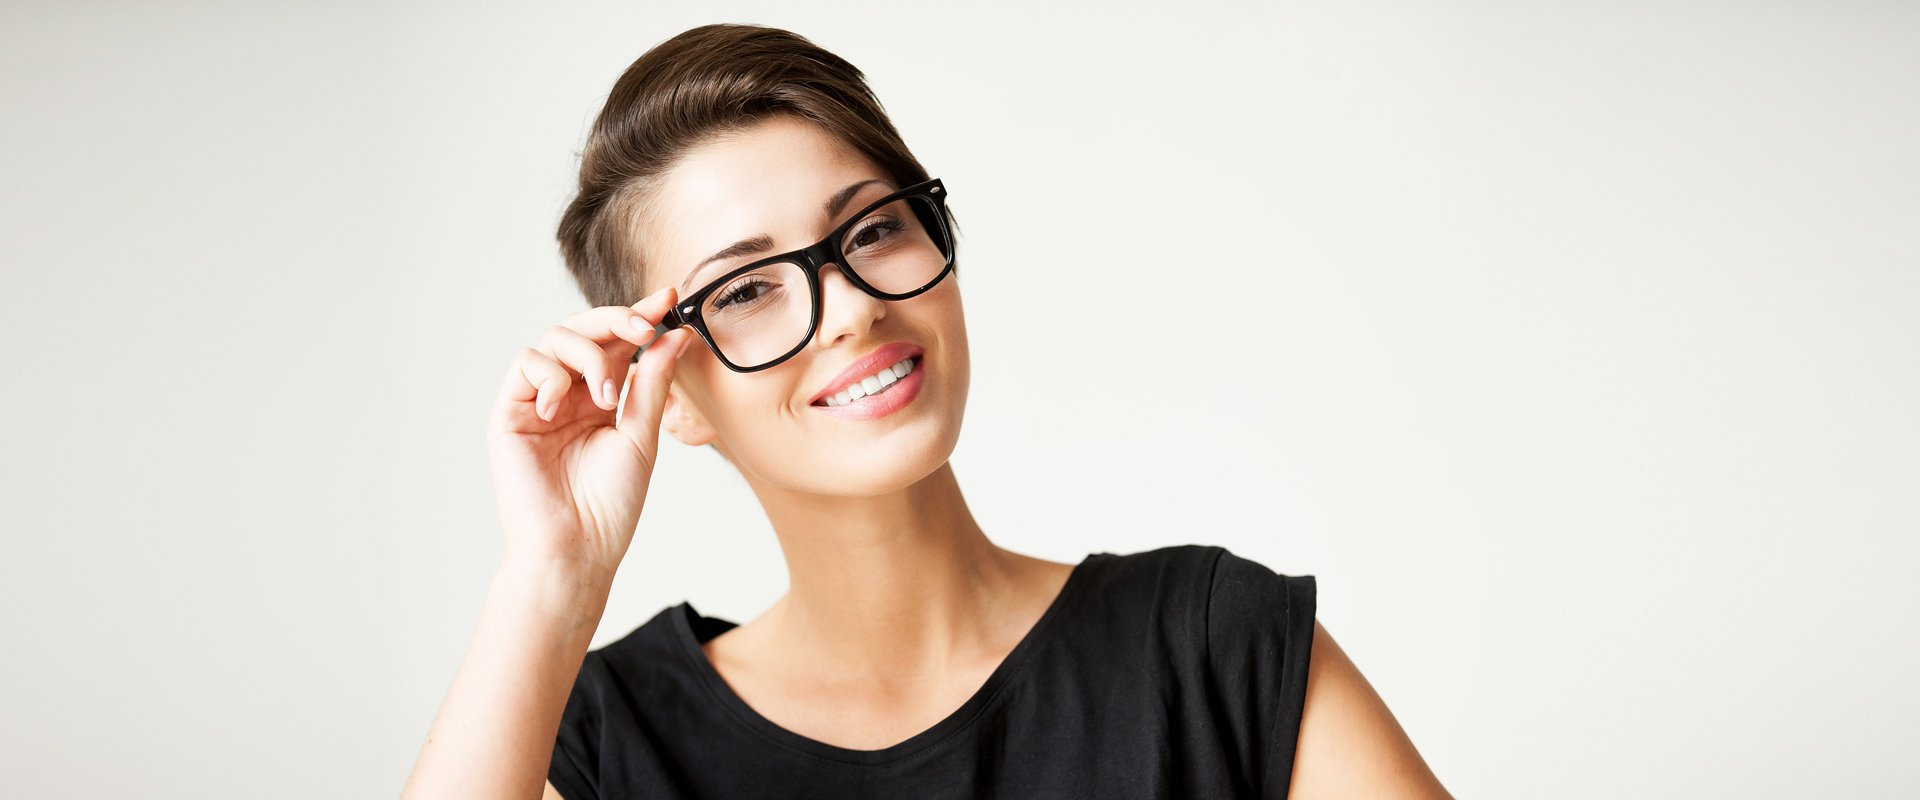 A woman wearing glasses